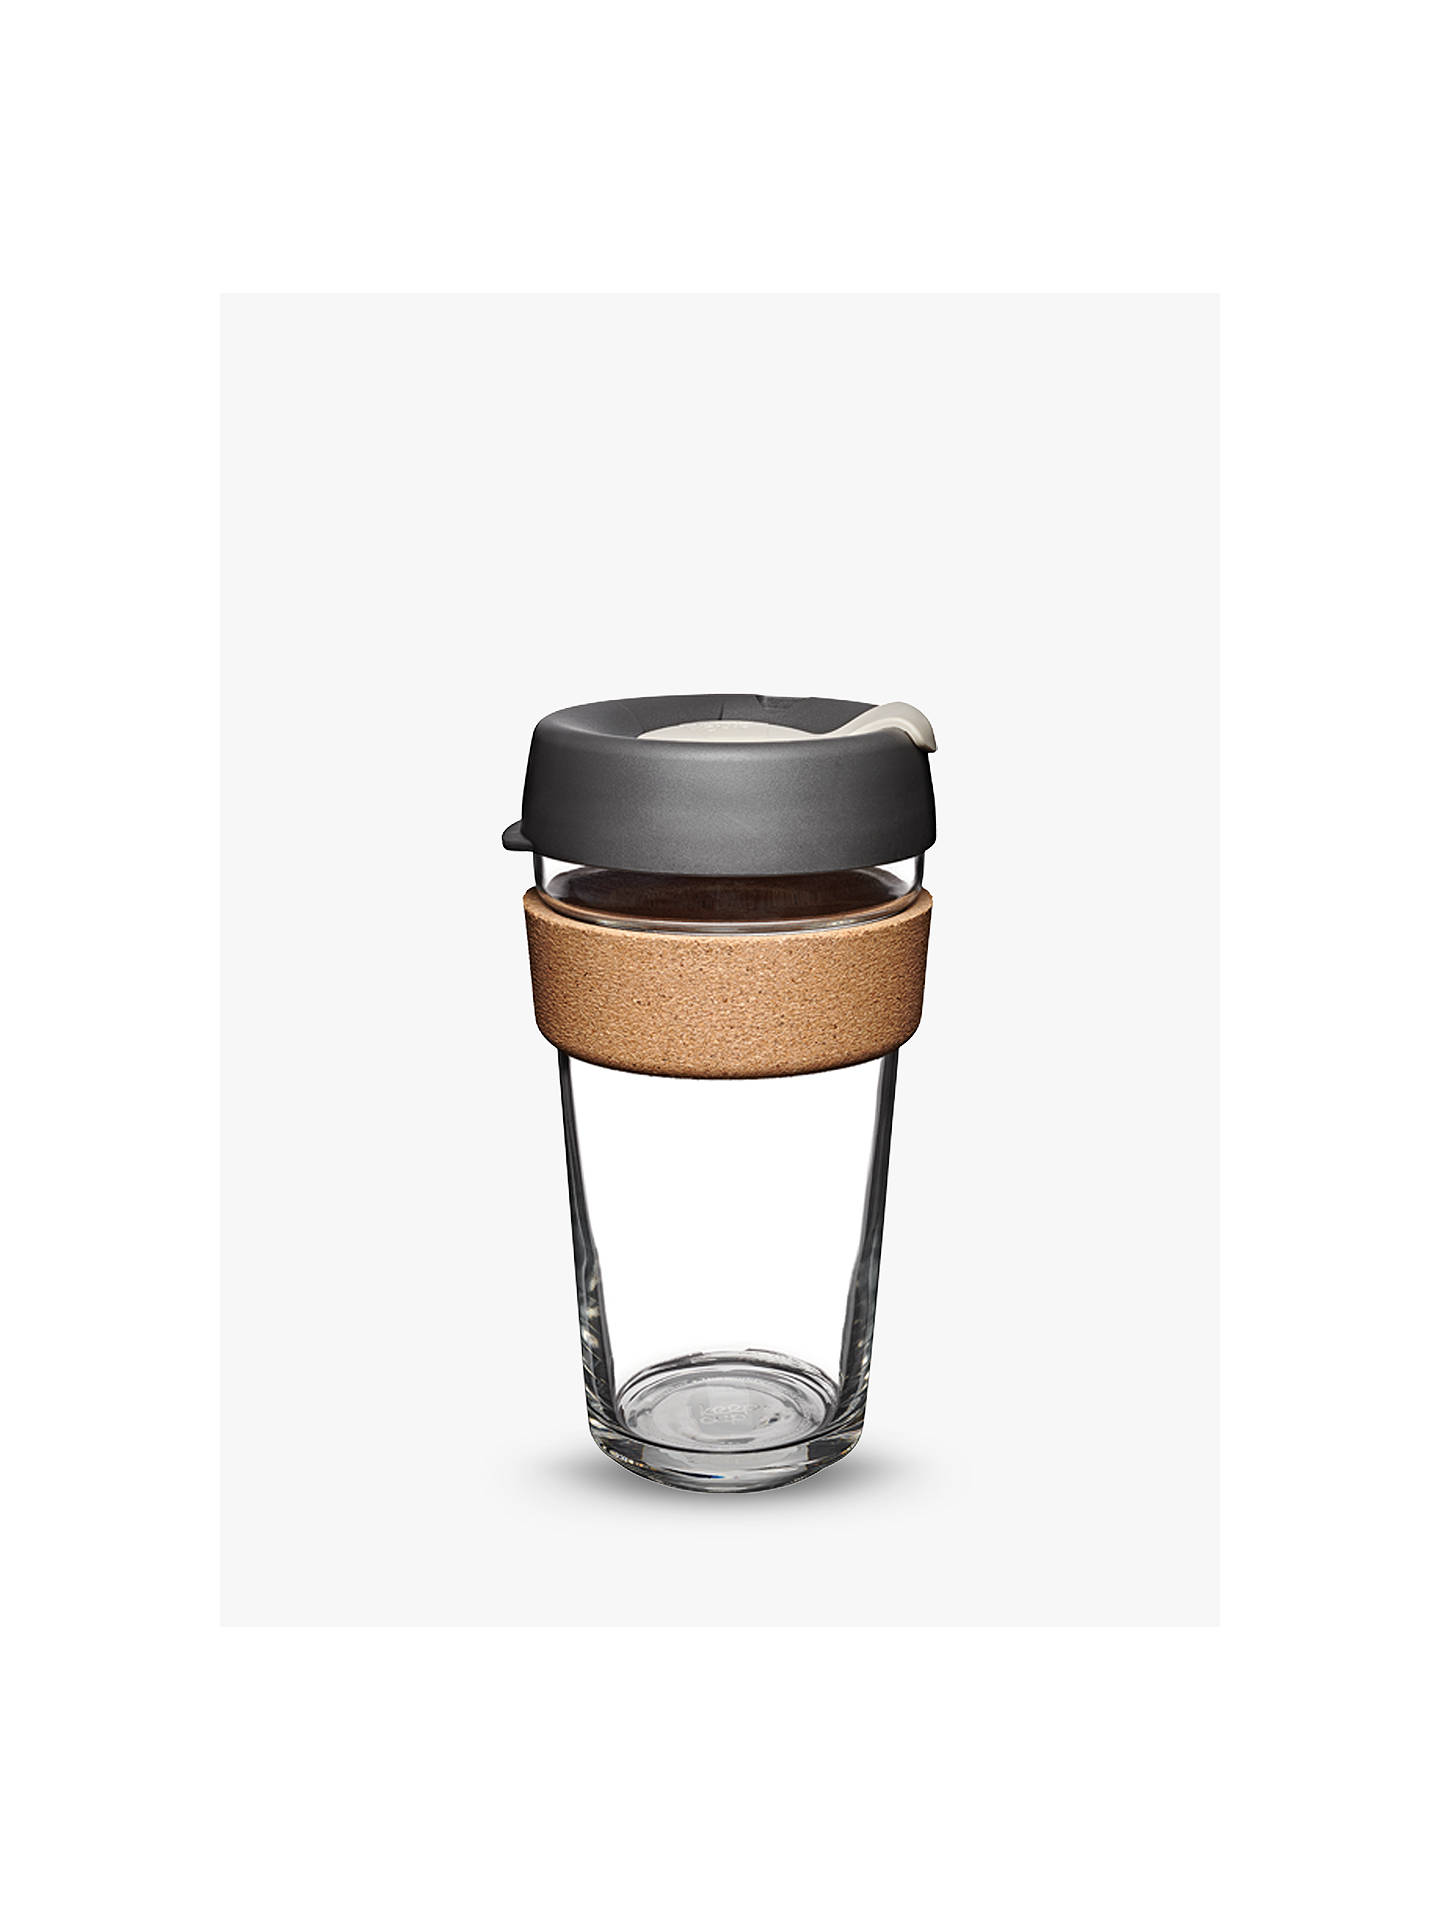 Buy KeepCup Cork Brew Reusable 16oz Glass Coffee Cup / Travel Mug, 455ml Online at johnlewis.com